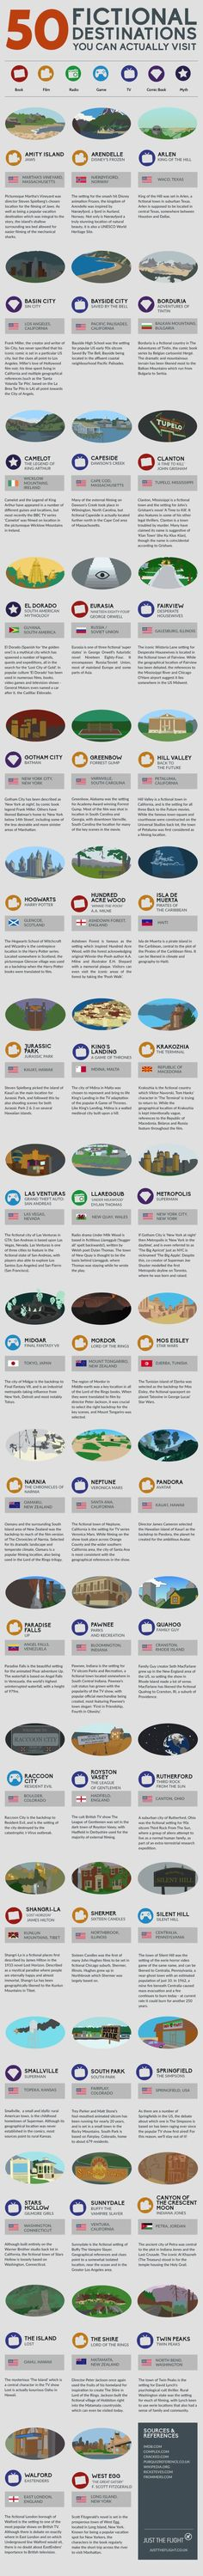 50 Fictional Places You Can Visit in Real Life. My geeky side demands trips to some of these.